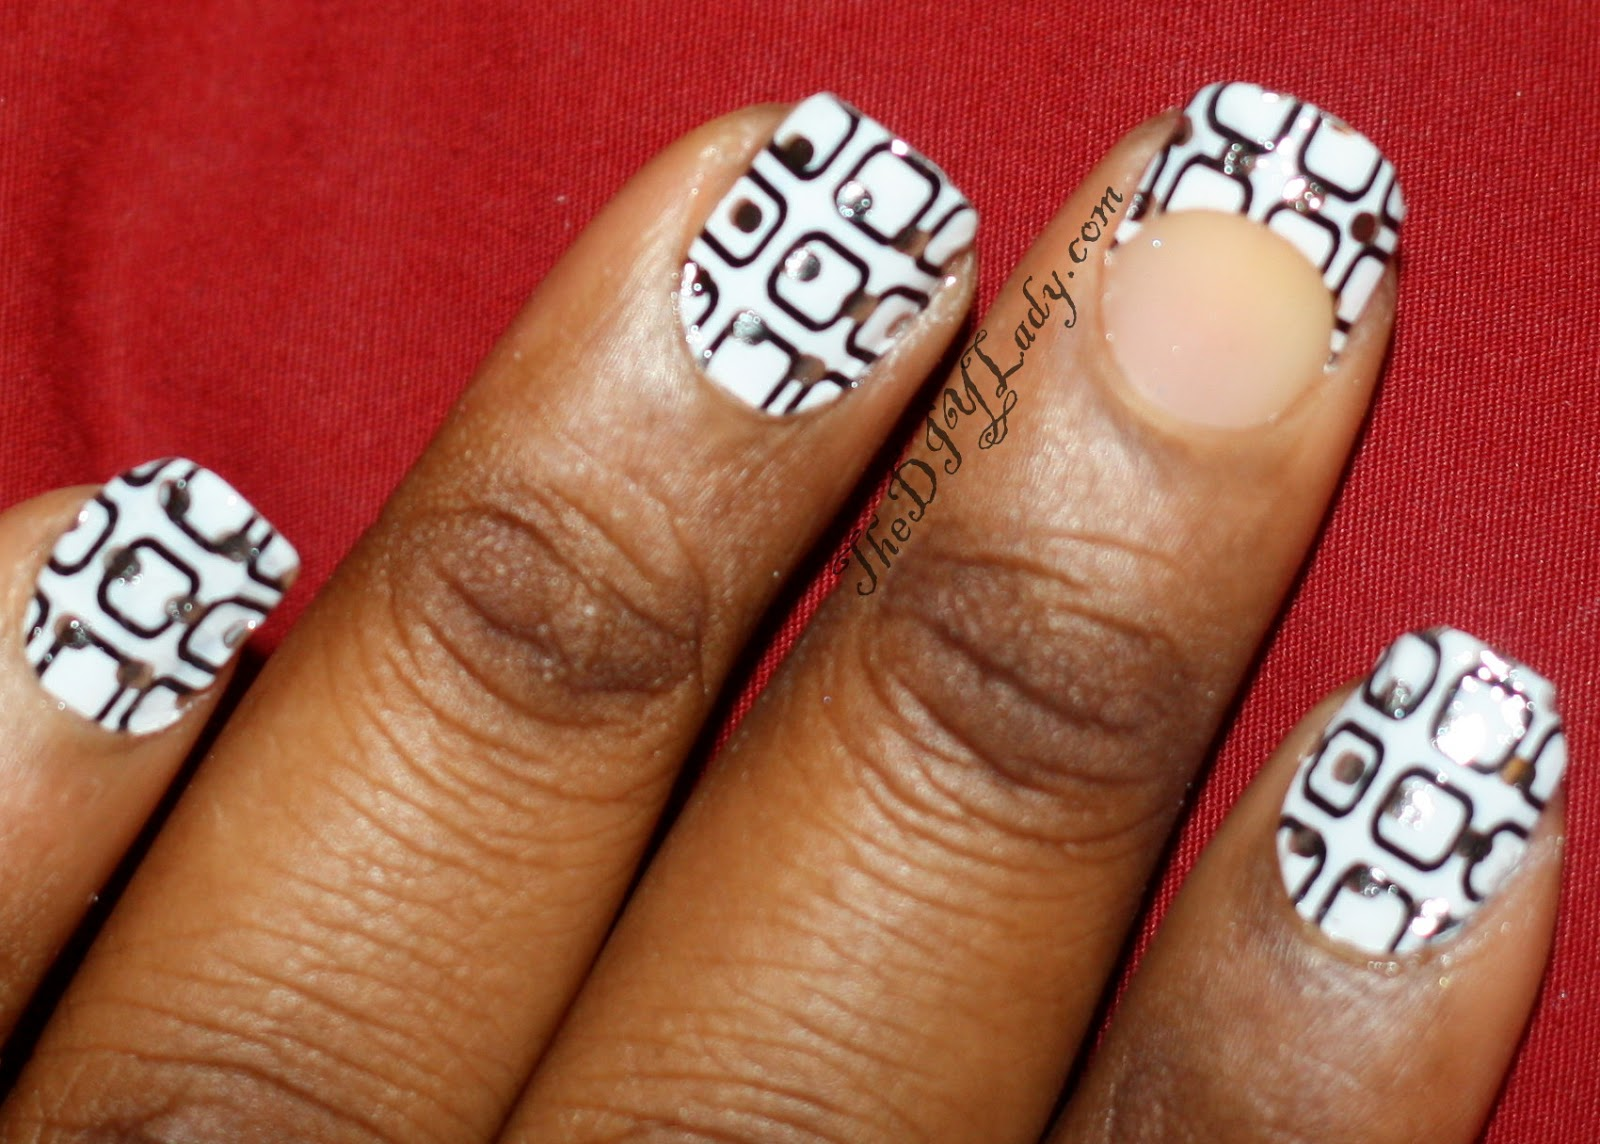 The Do It Yourself Lady: Black and White Nails: Mystique Nail Applique